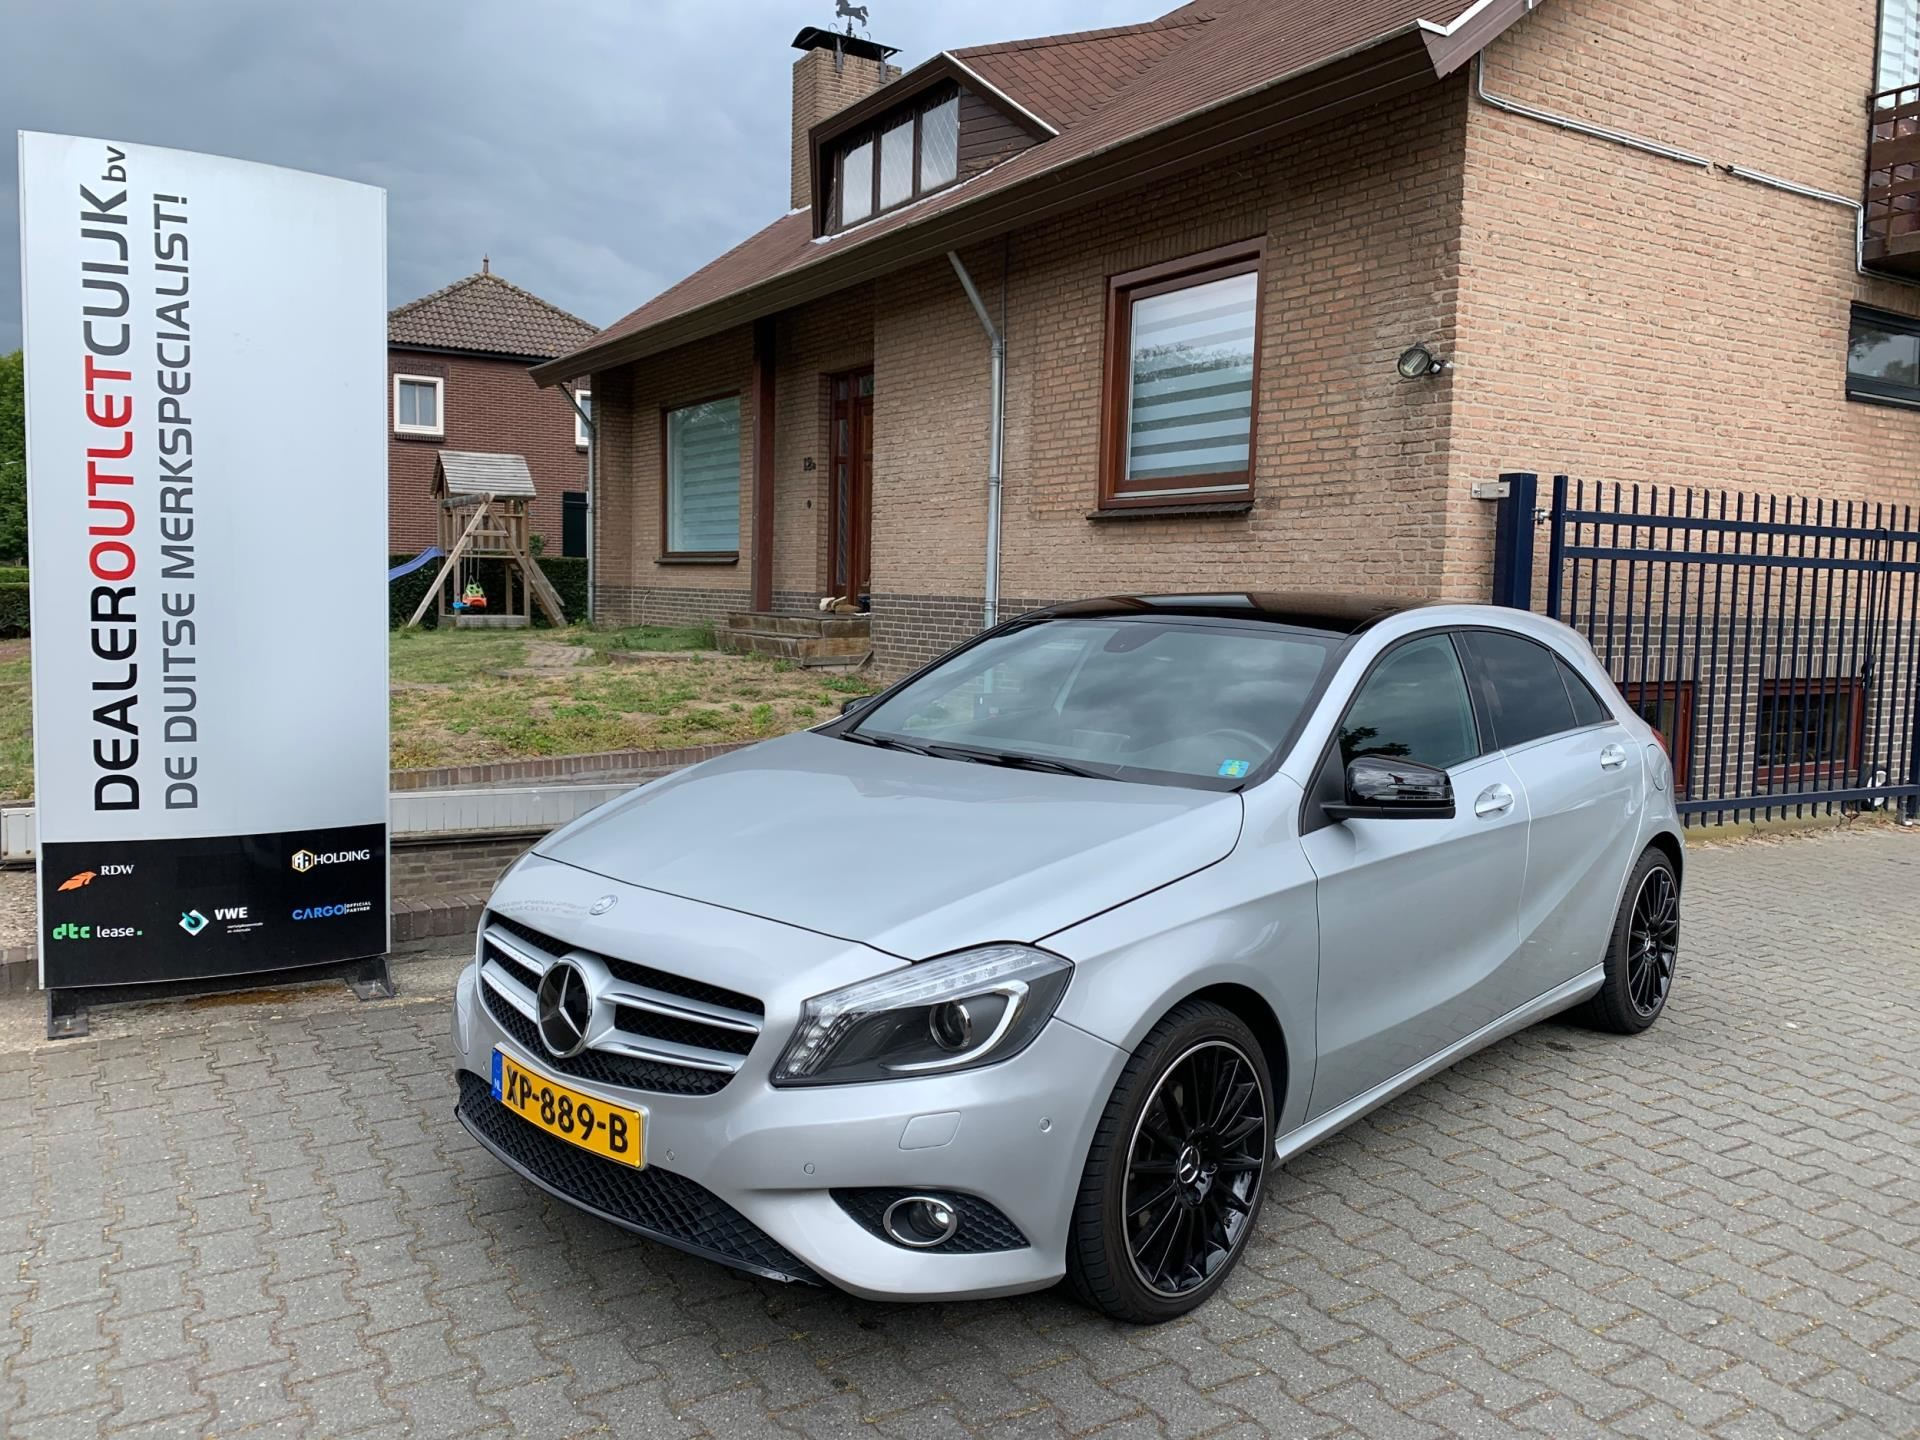 Mercedes-Benz A-klasse occasion - Dealer Outlet Cuijk b.v.